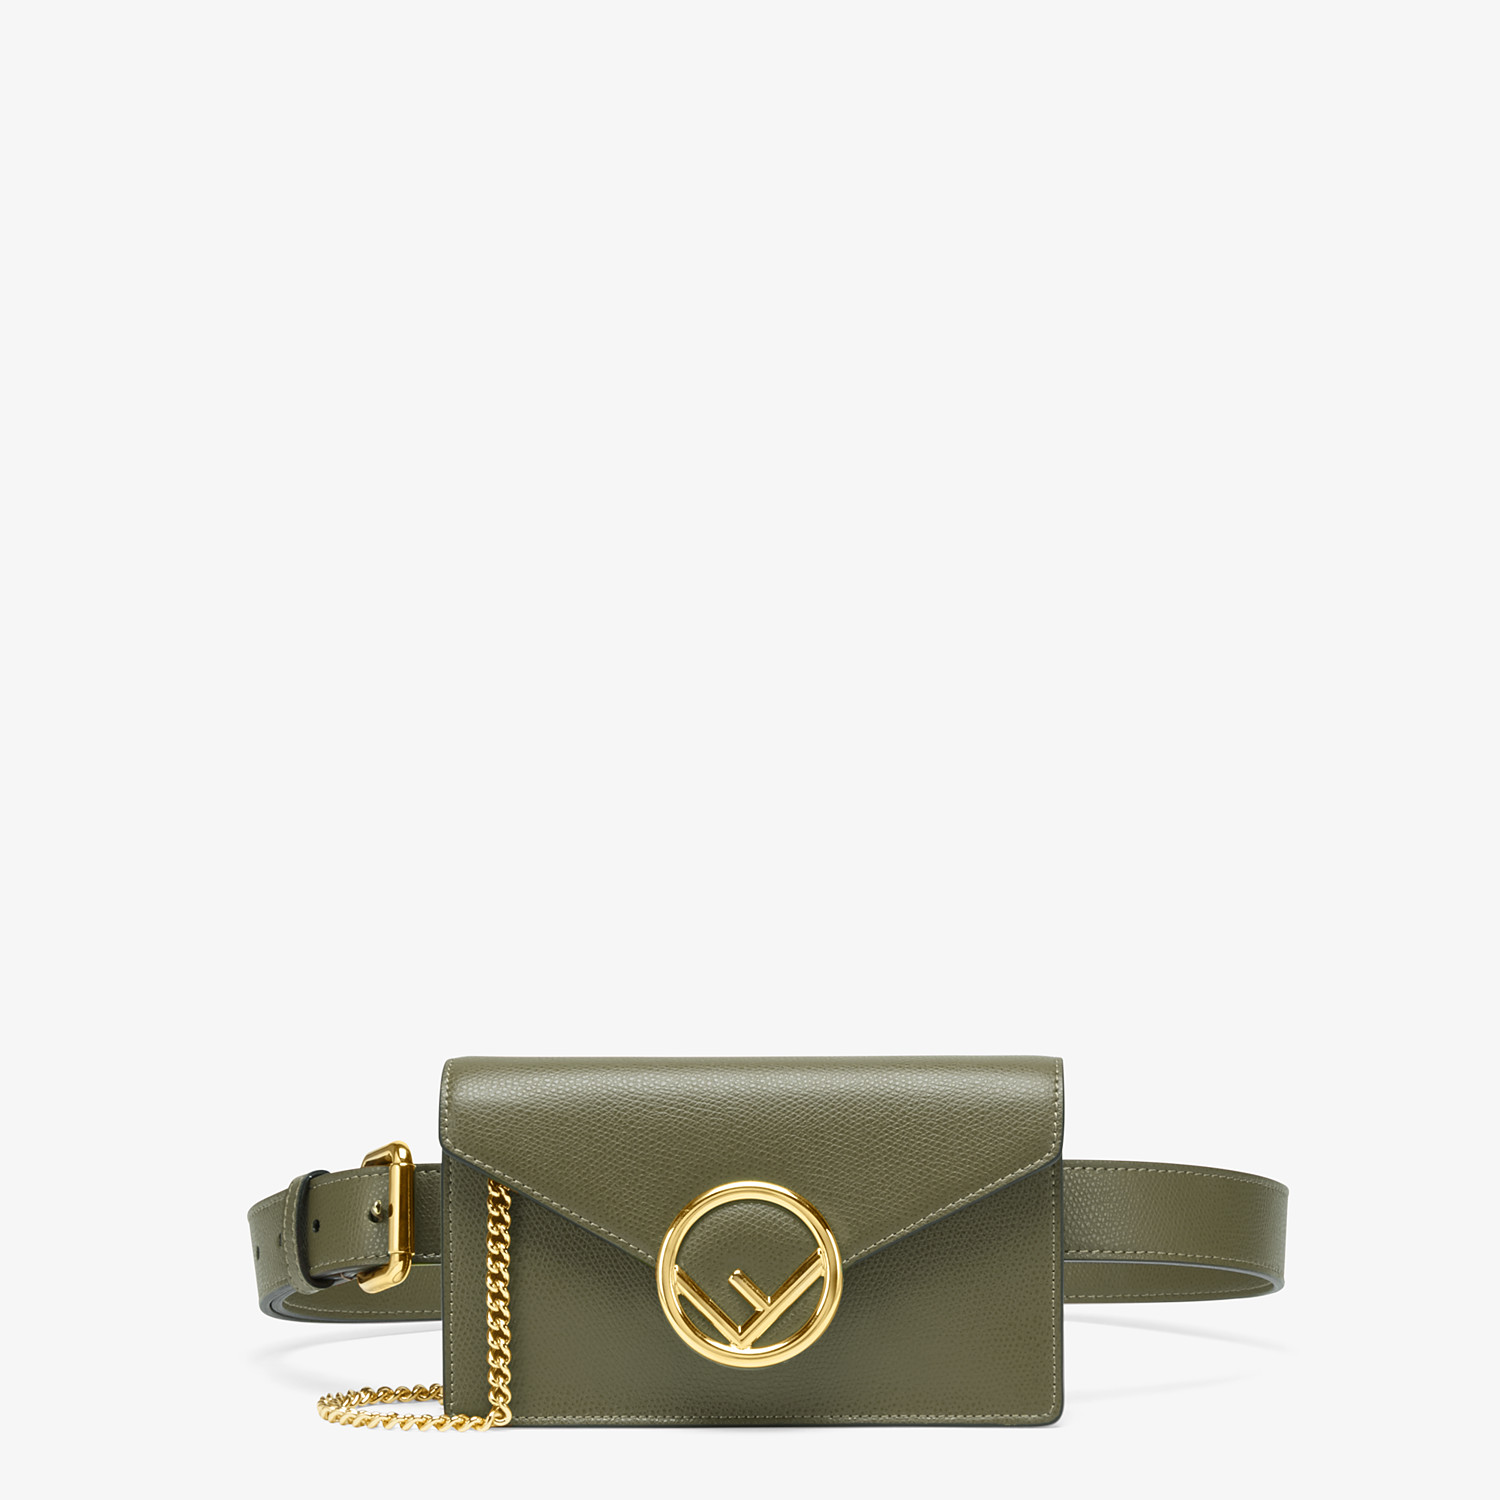 FENDI BELT BAG - Green leather belt bag - view 1 detail